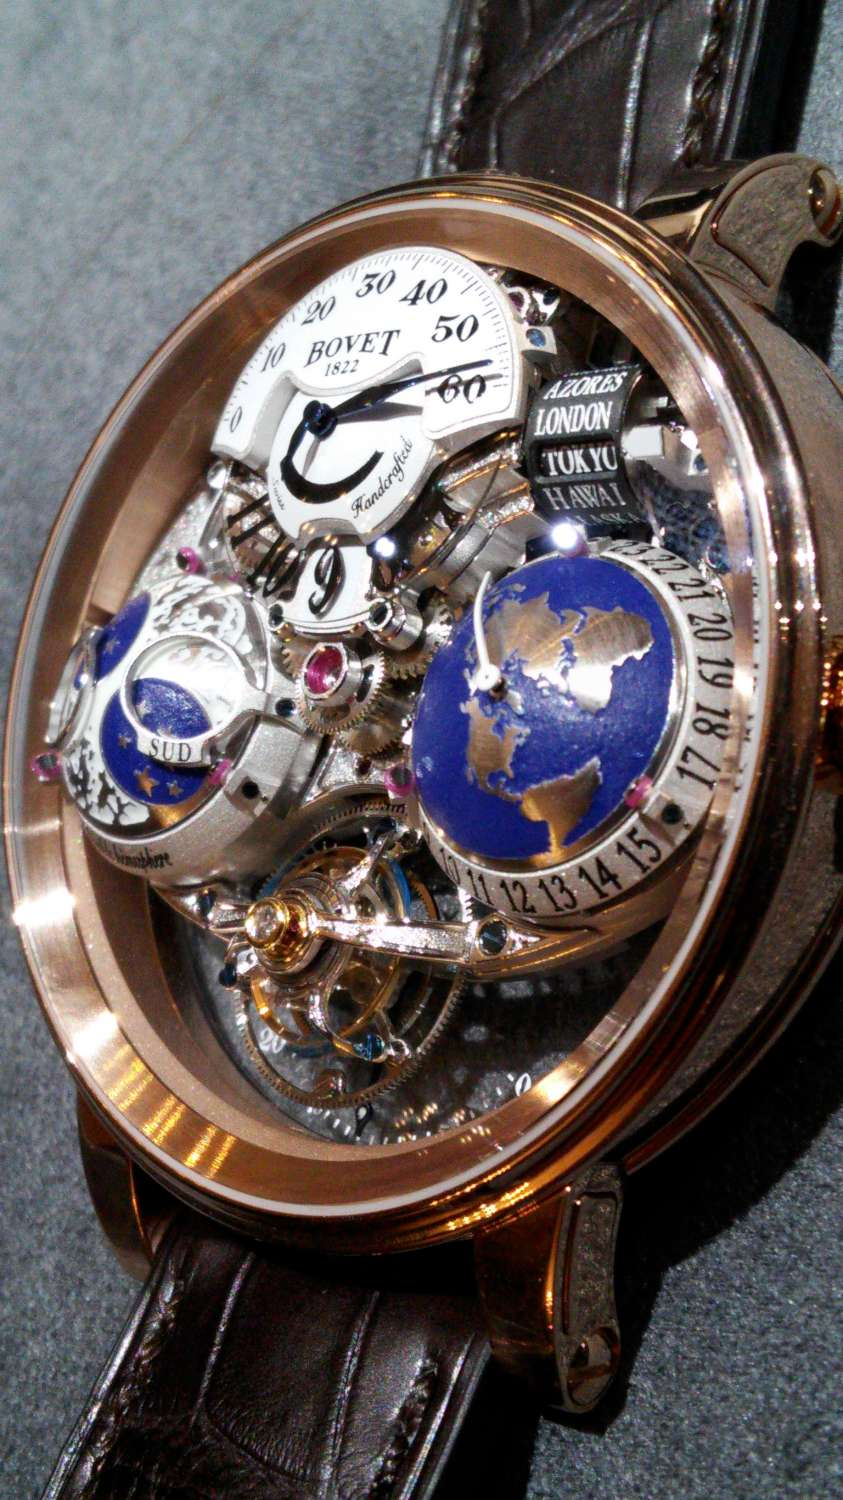 ottantasei sihh bovet watches live pininfarina watch and star anish tourbillon shooting recital